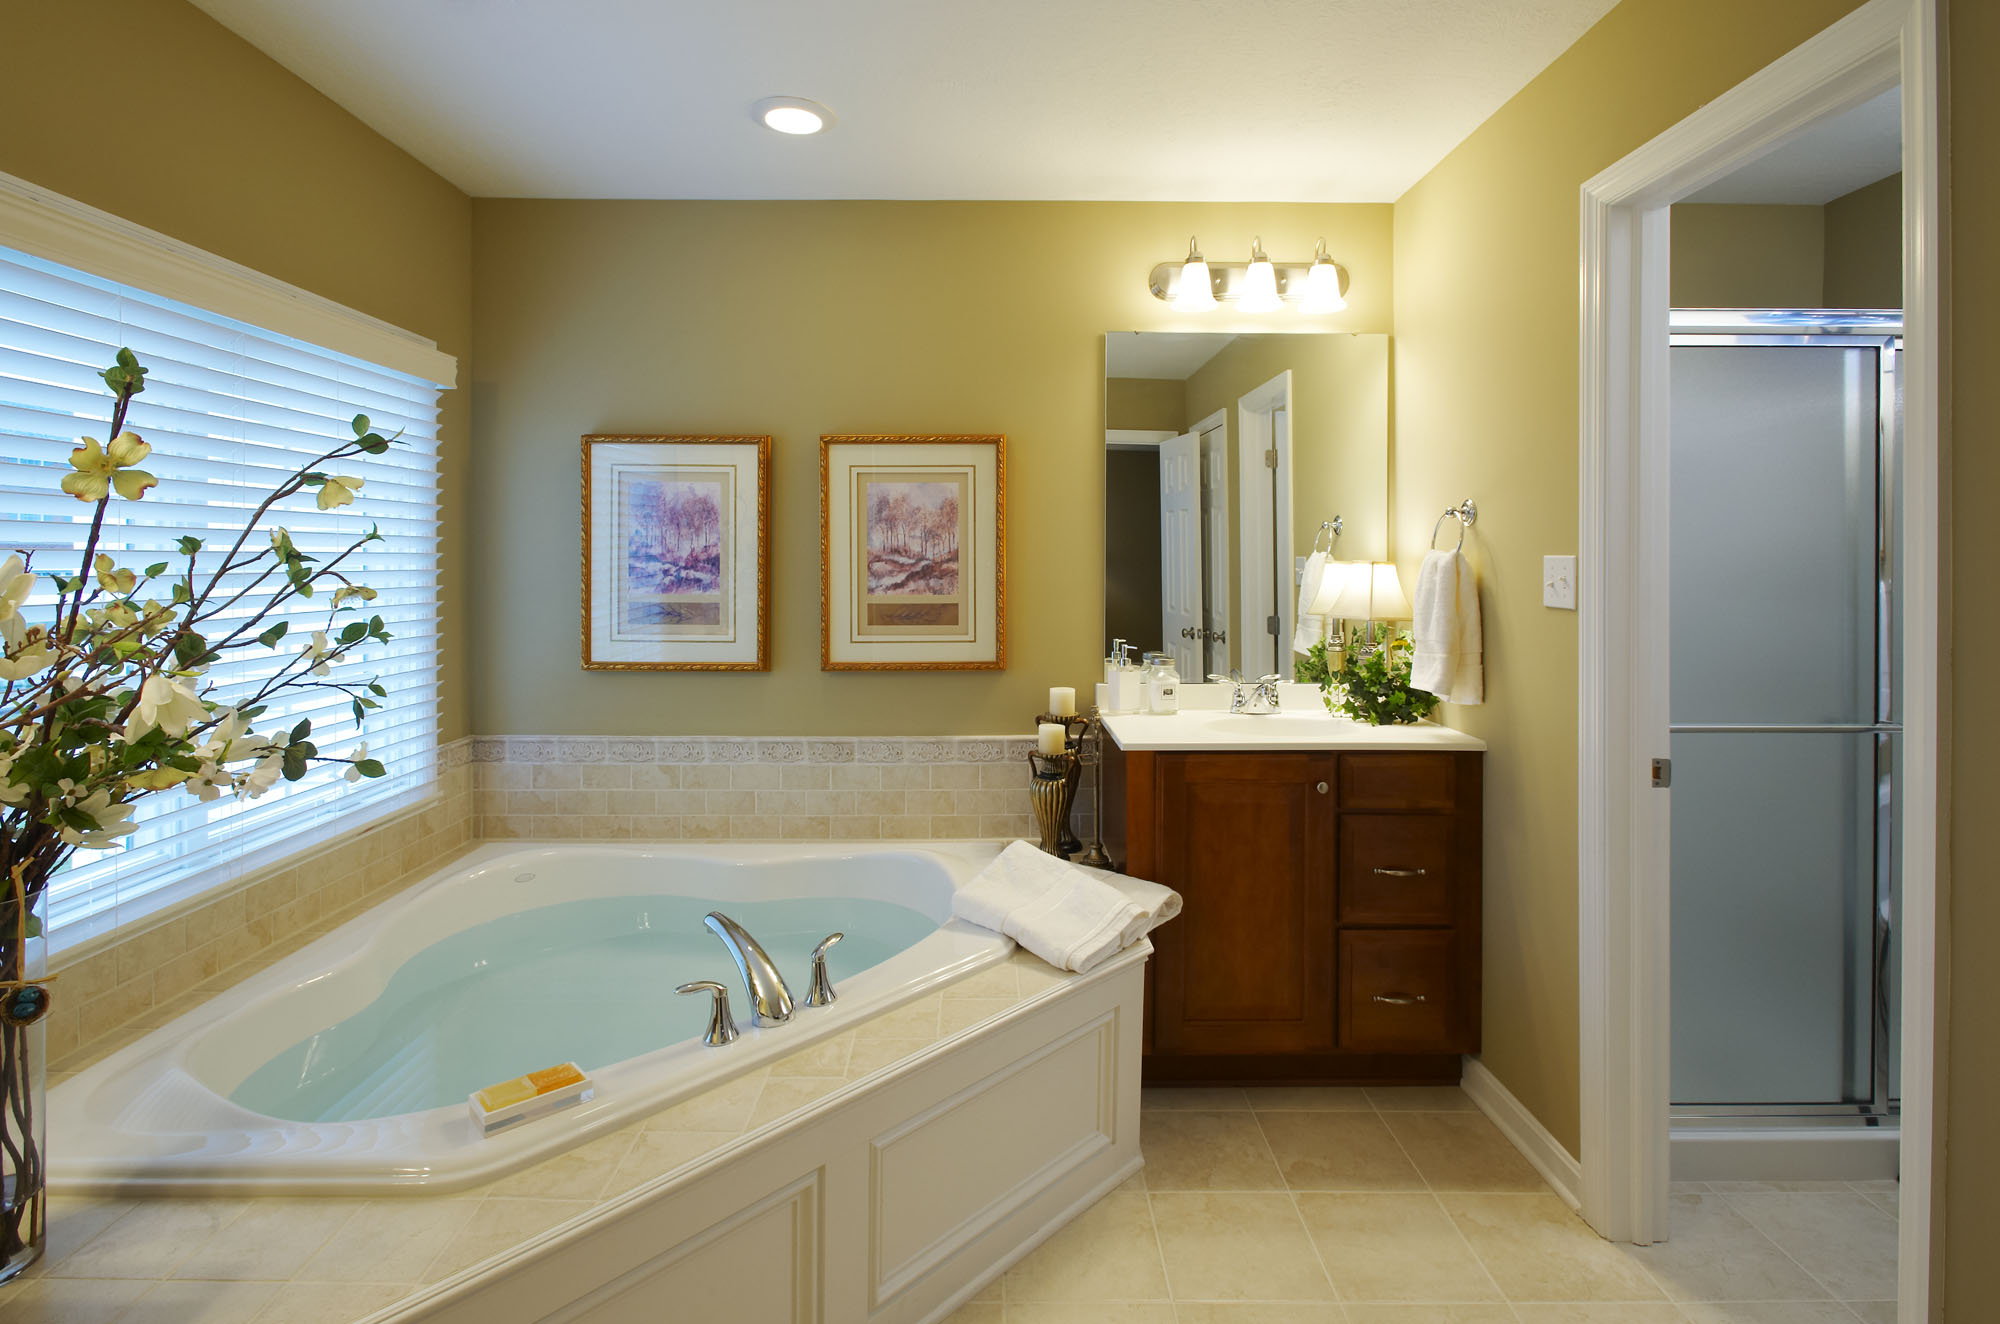 Model home bathroom pictures 17 varities of looking your for Model bathrooms photos